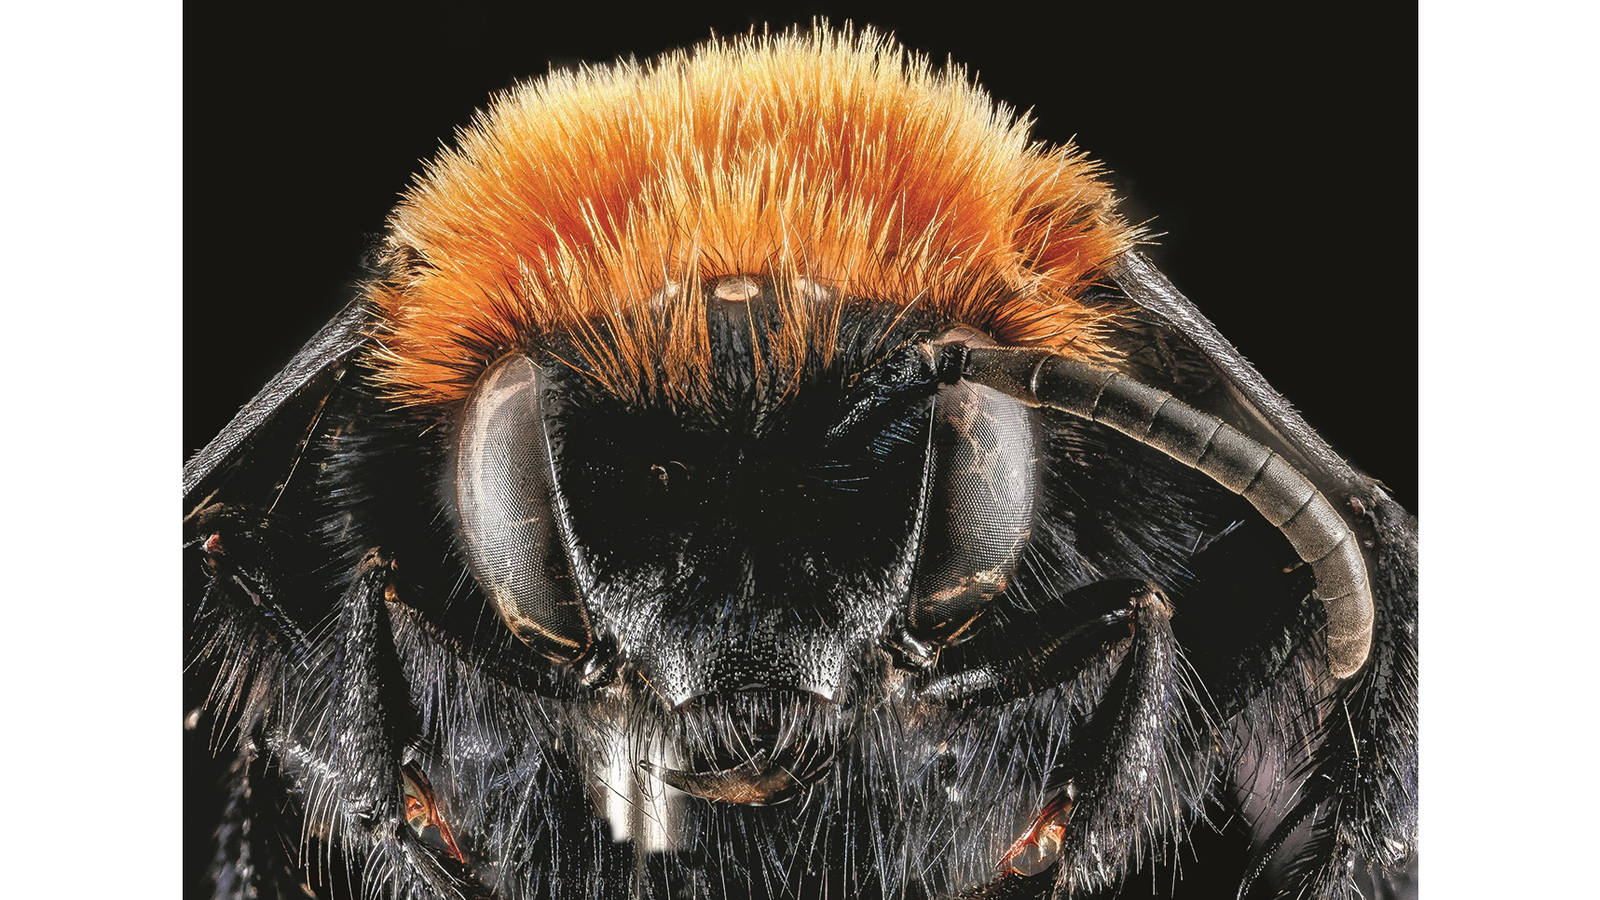 """<h3 style=""""text-align: center; padding: 50px;""""><span class=""""text-Intro-style"""">Melecta bee (species unknown, although Sam Droege jokingly labeled it """"Billy Idol Melecta"""" after the 1980s rock star), Fossil Butte National Monument, Wyoming. © SAM DROEGE/USGS BEE INVENTORY AND MONITORING LAB</span></h3>"""